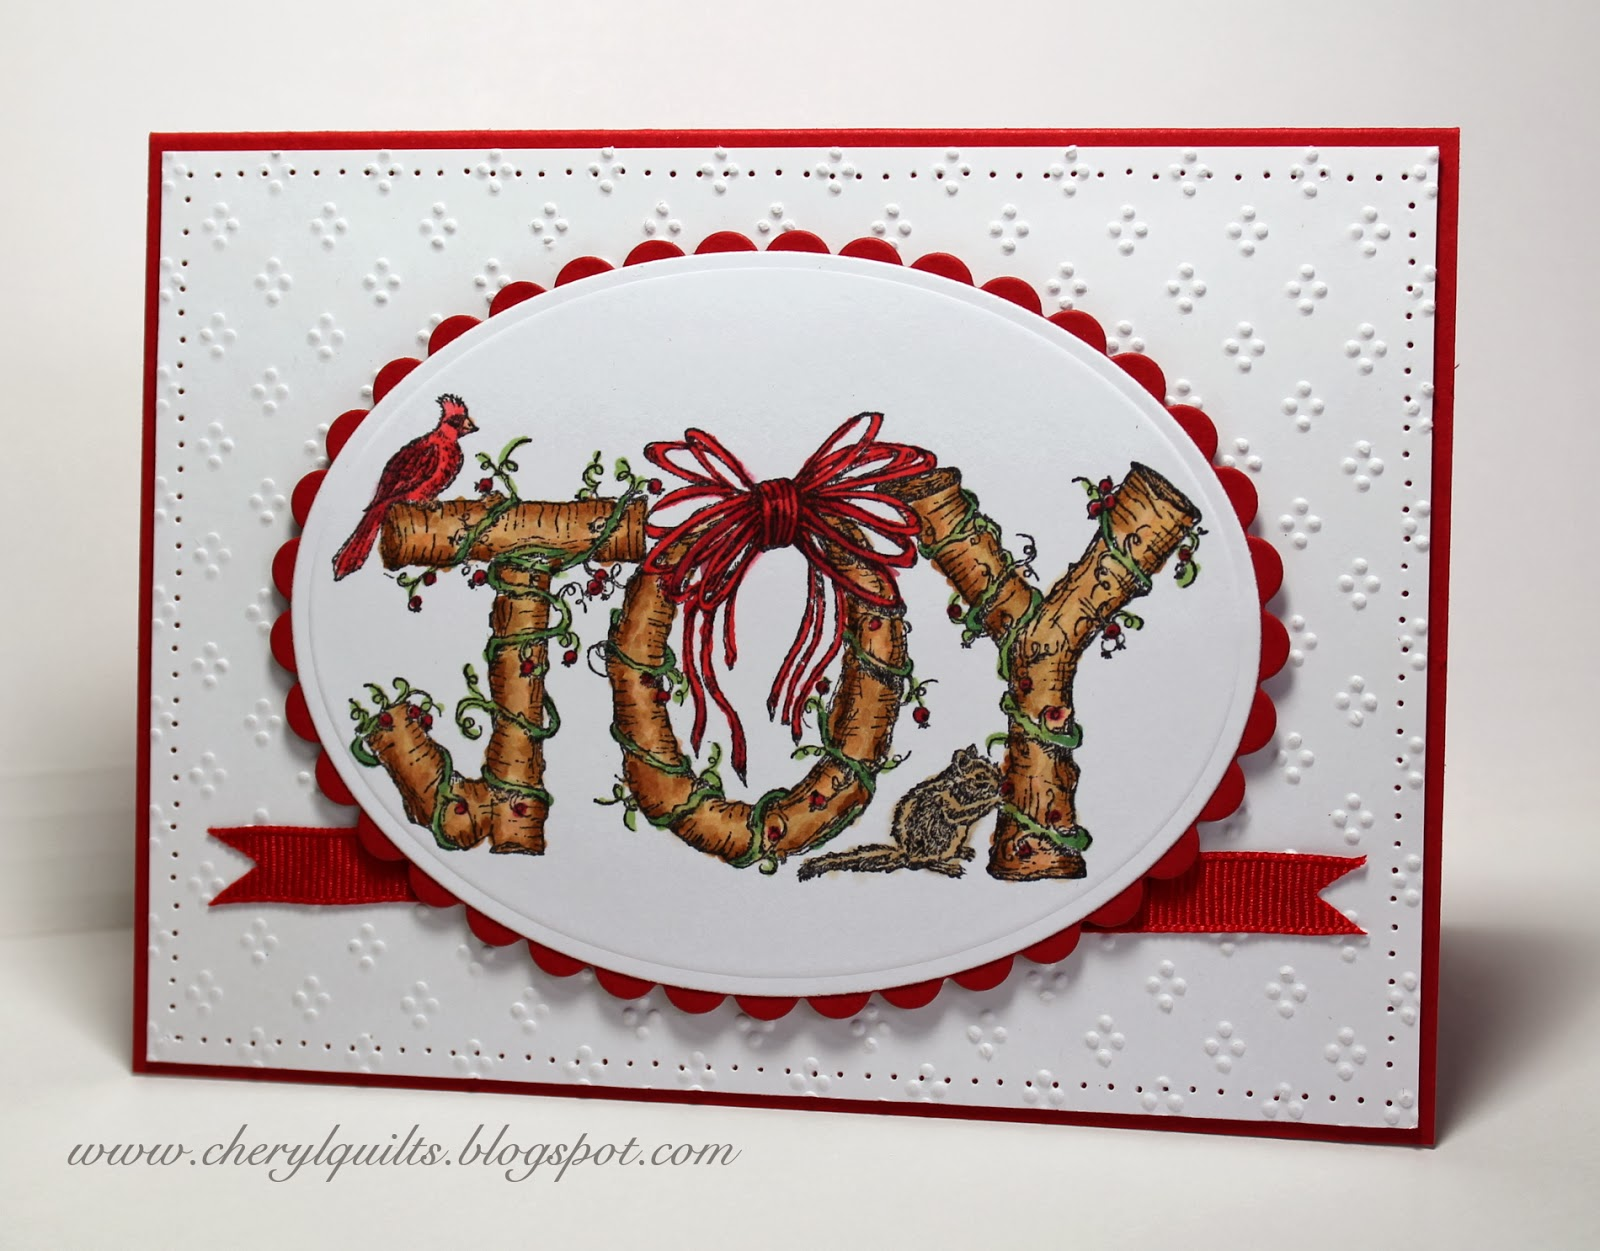 CherylQuilts, North Coast Creations, Joy, Christmas, F4A199